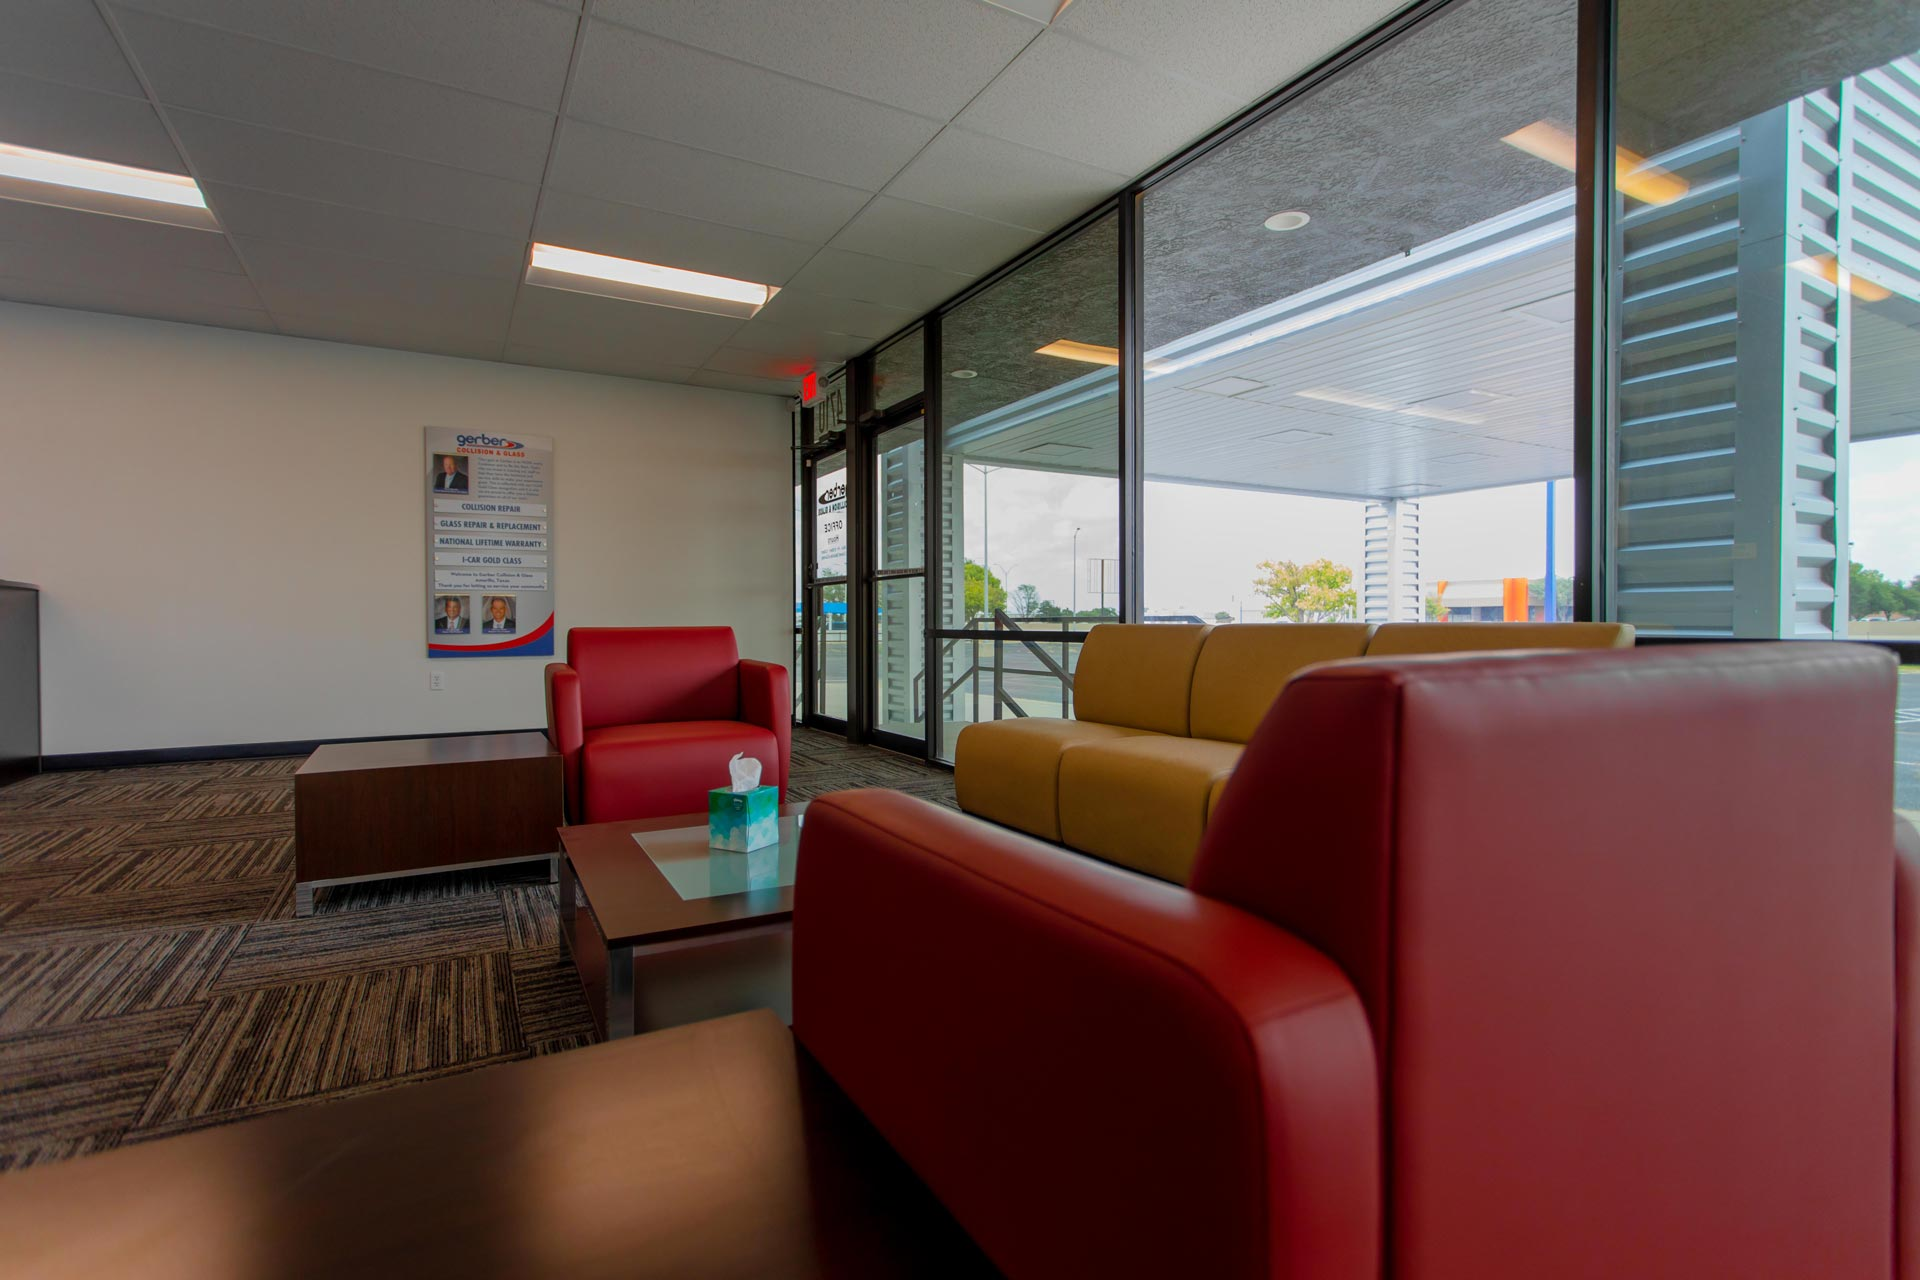 Gerber_colllision_and_glass_Amarillo_ Building_Interior_7_Cole_Stanley